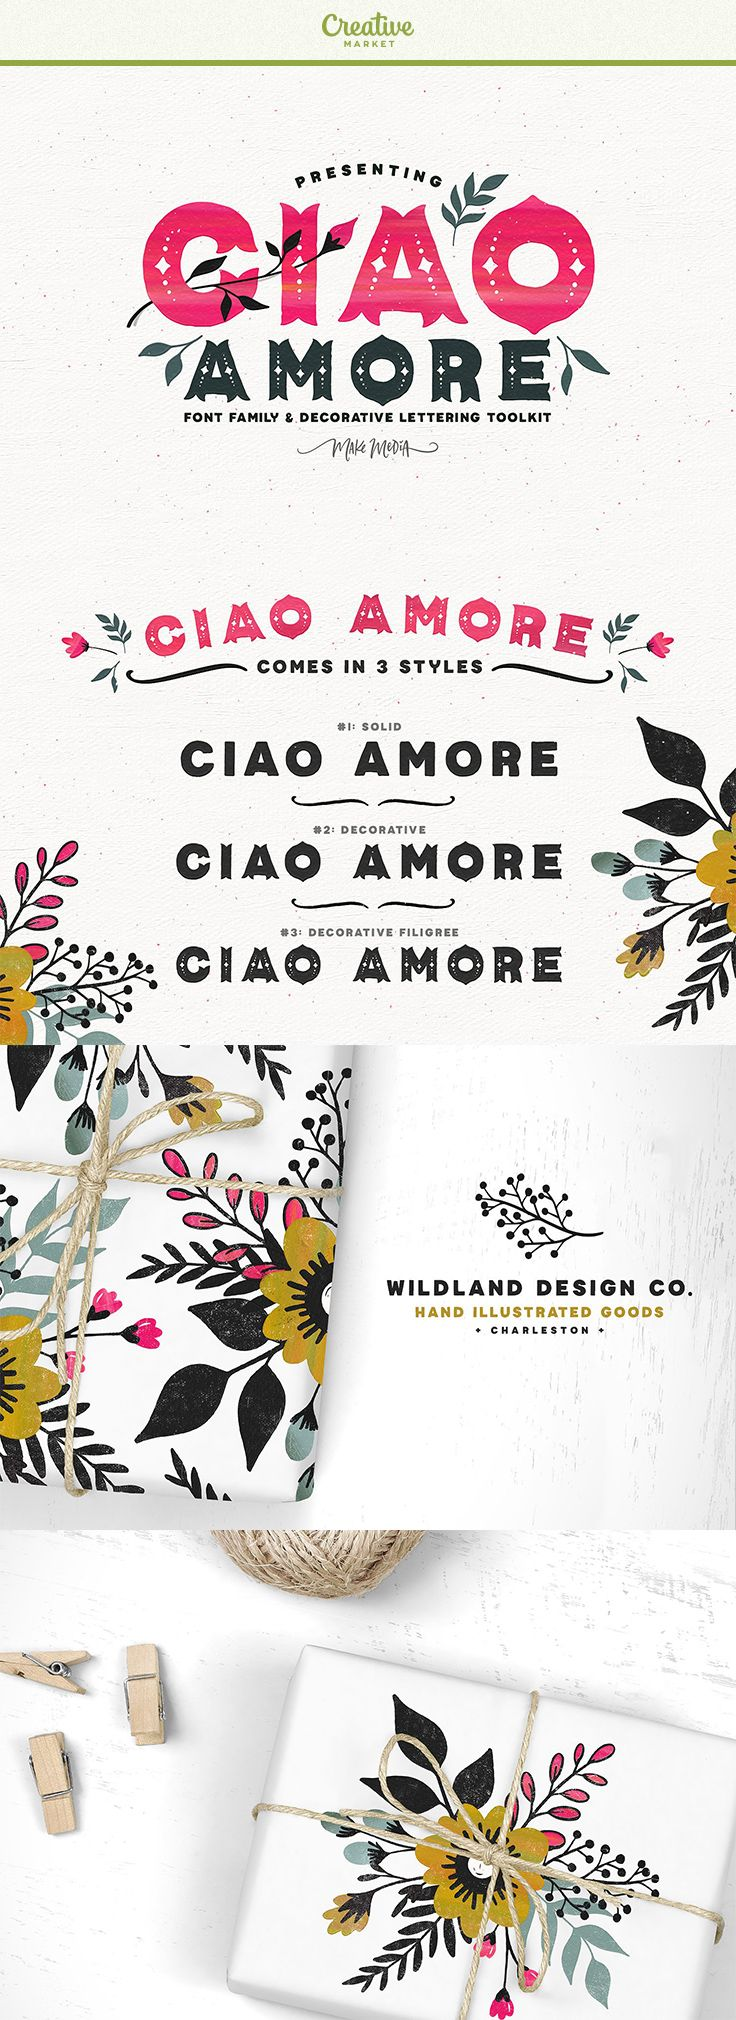 Affiliate | Now you can use this delicate lettering kit to design gorgeous typography, floral designs, packaging, greeting cards, logos and TONS more - all with with a unique, decorative flair! With over 200 hand-drawn elements, 3 versatile fonts, and a set of acrylic Photoshop Styles, the sky's the limit on design and color!